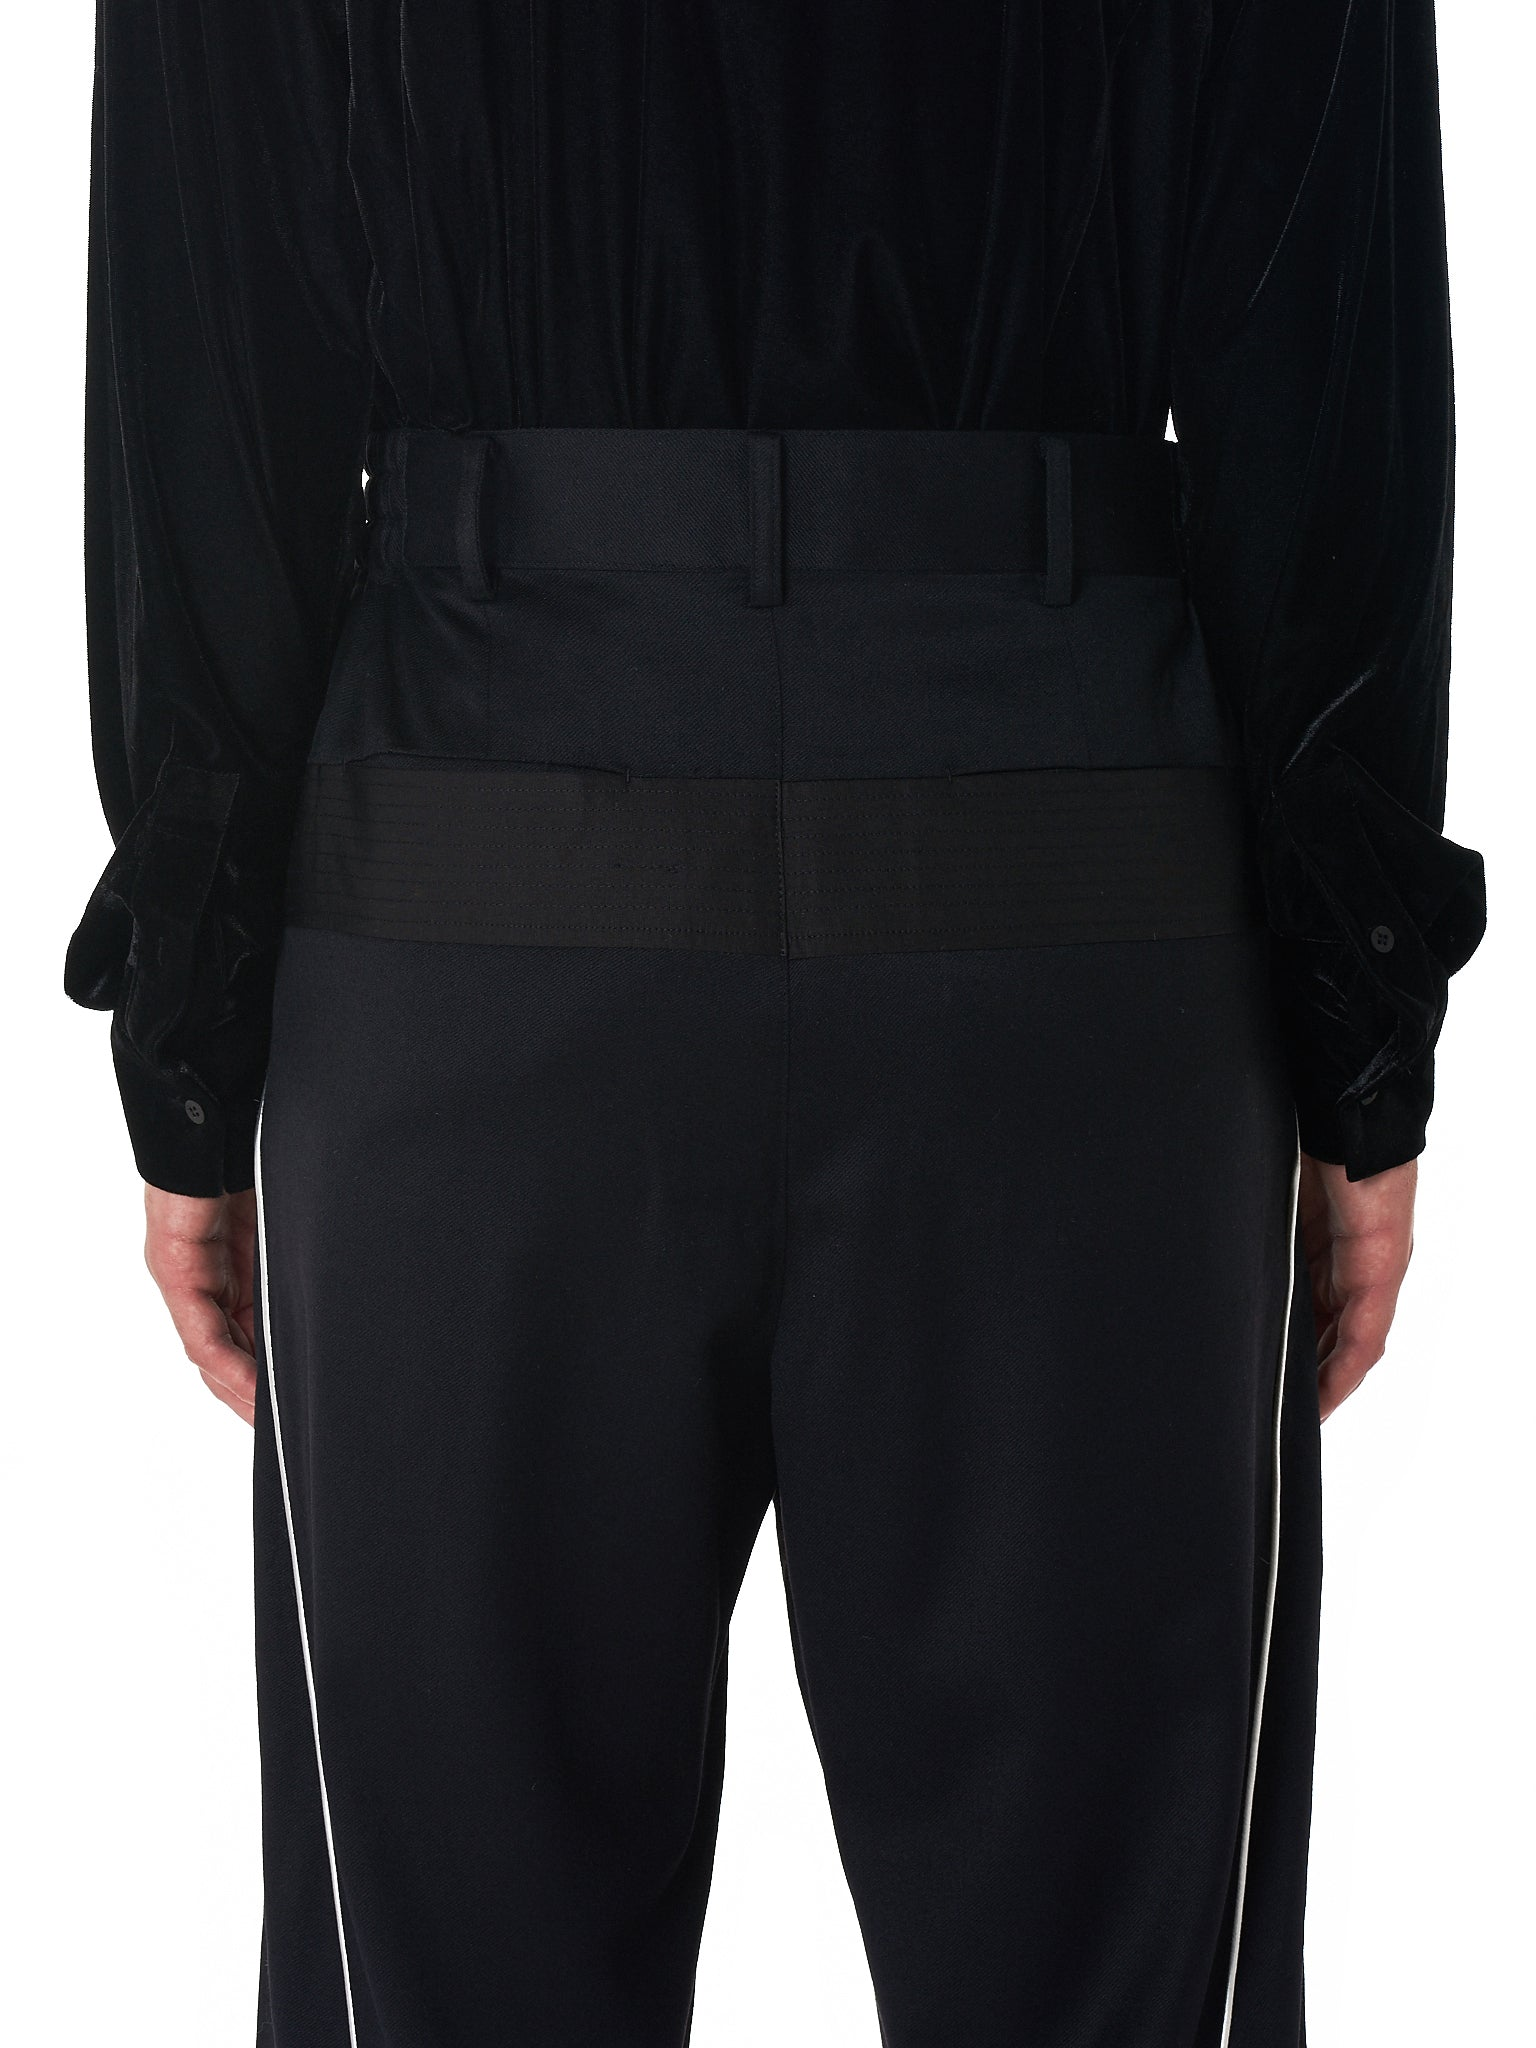 D.Gnak Cropped Trouser - Hlorenzo Back Detail